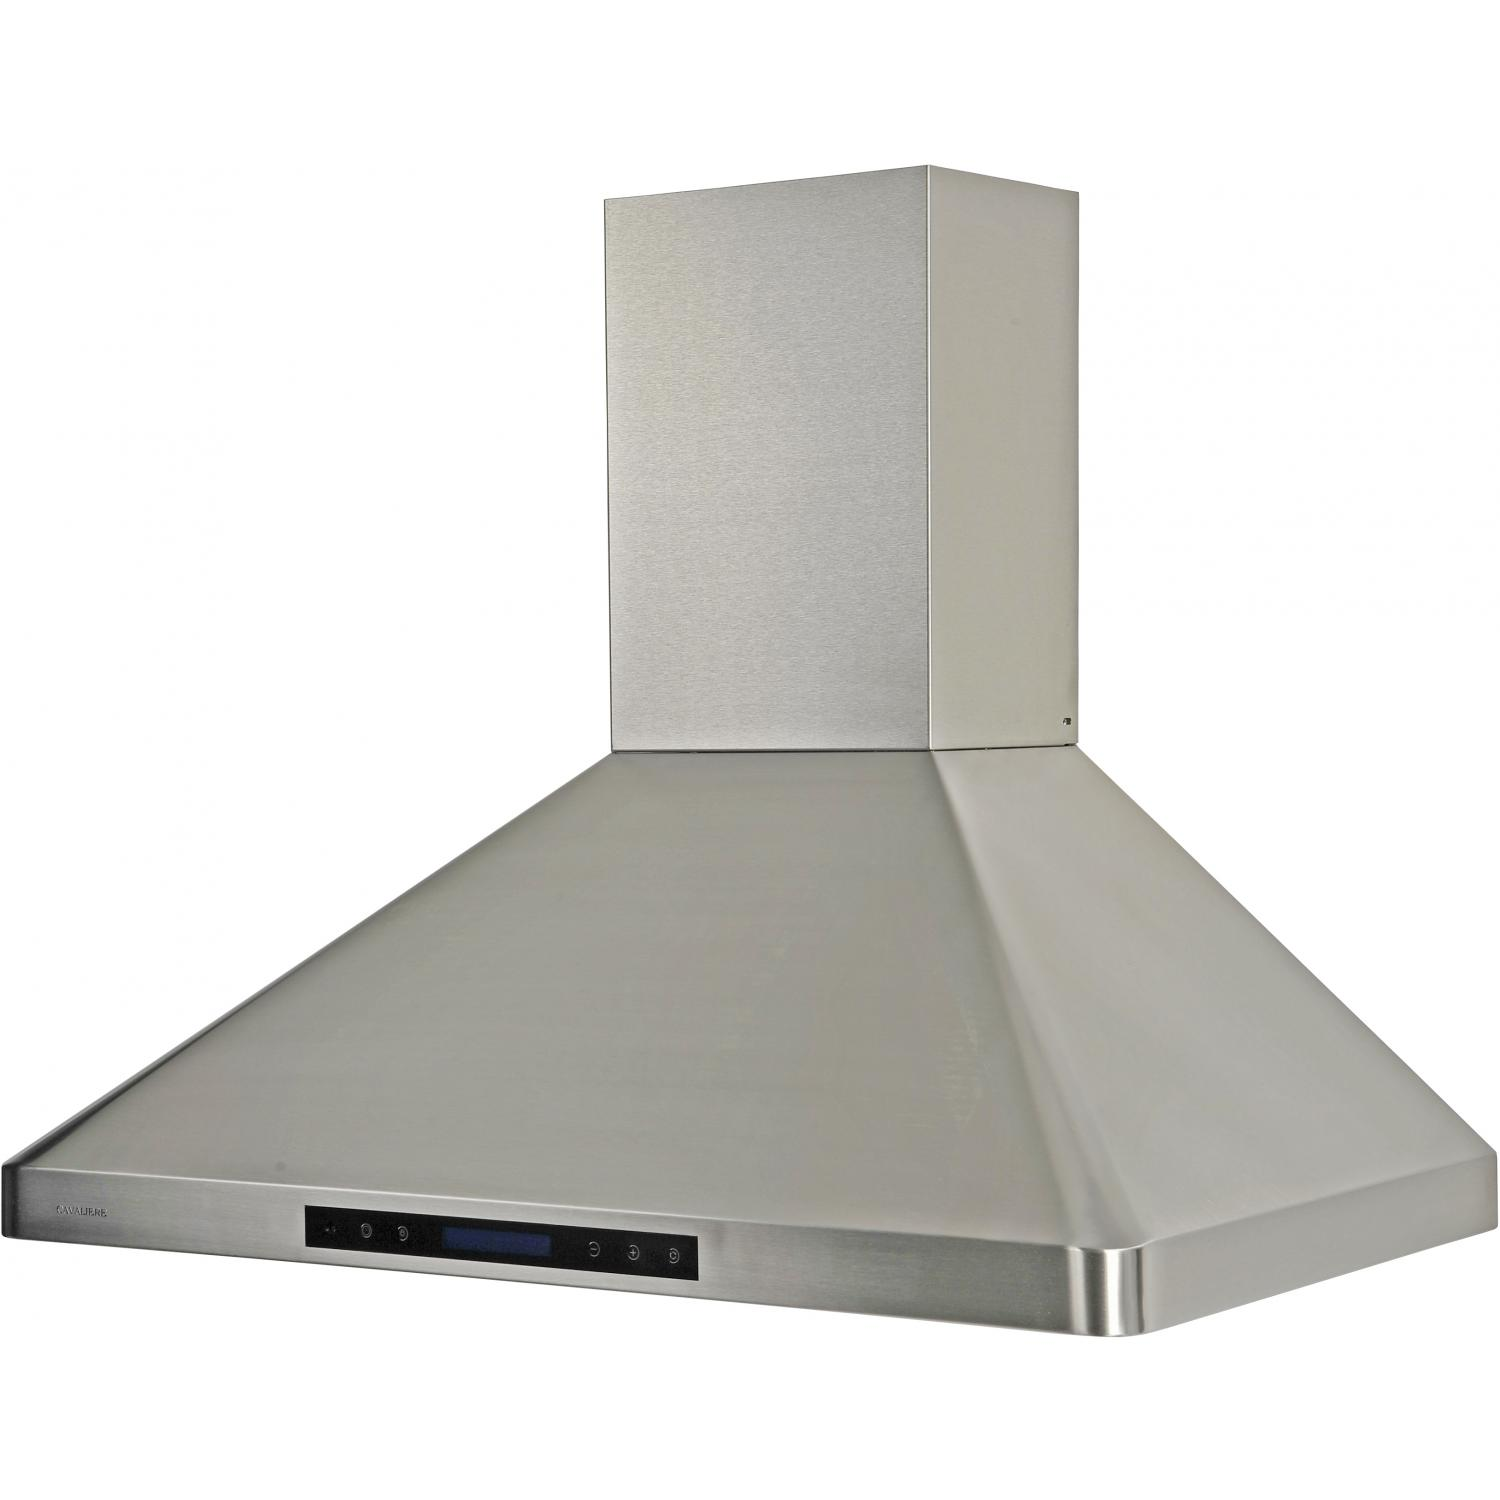 Cavaliere AirPRO 238 Professional Series 36-Inch 900 CFM Wall Mounted Range Hood - AP238-PS31-36